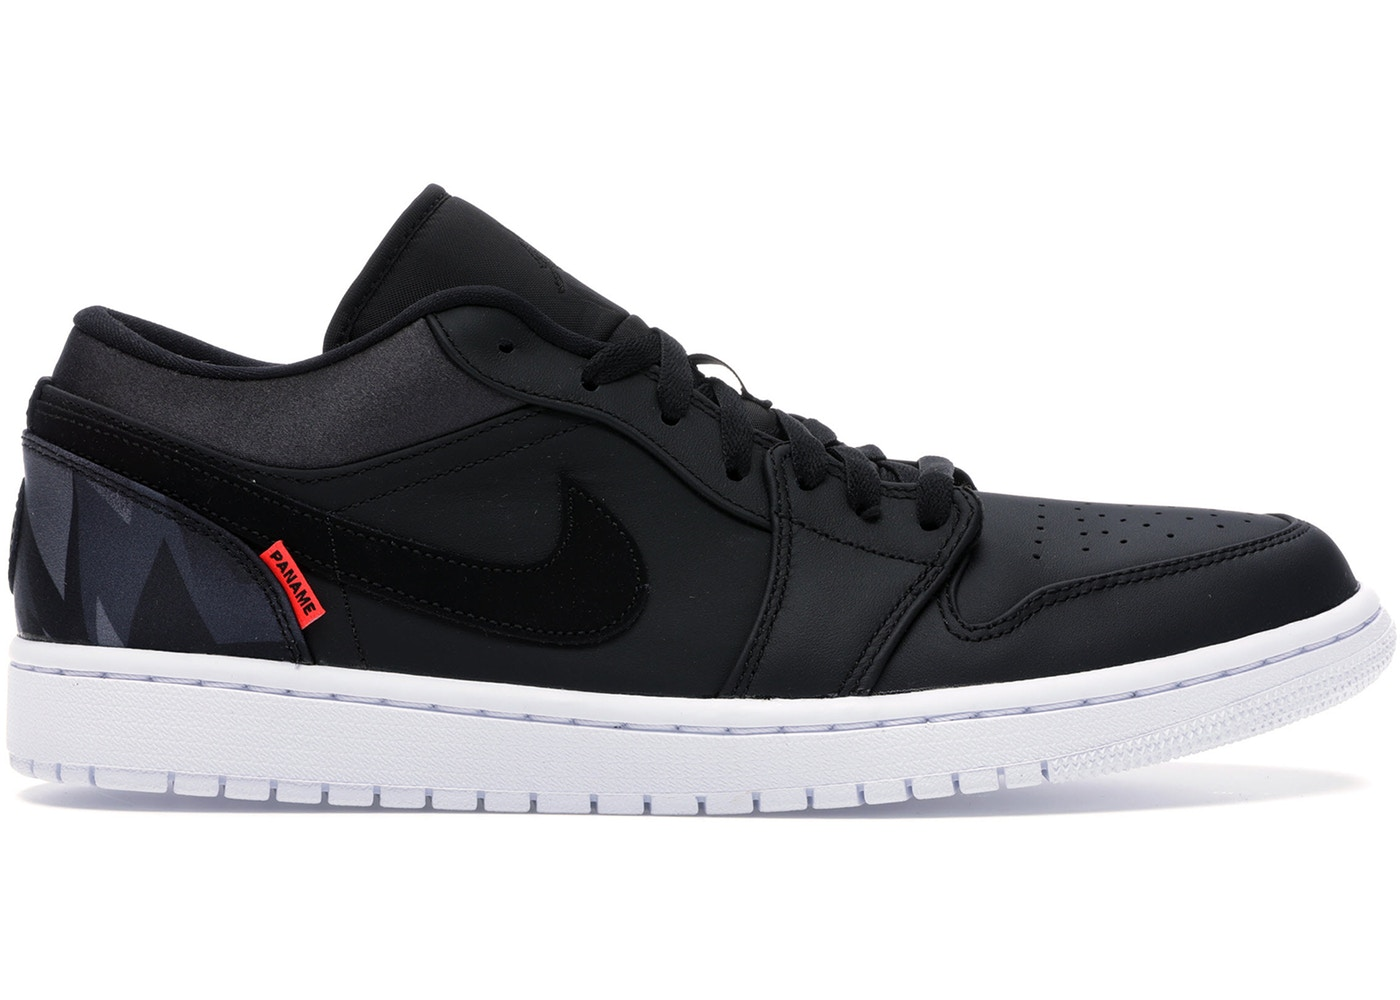 newest a few days away buy Now Available: PSG x Air Jordan 1 Retro Low — Sneaker Shouts